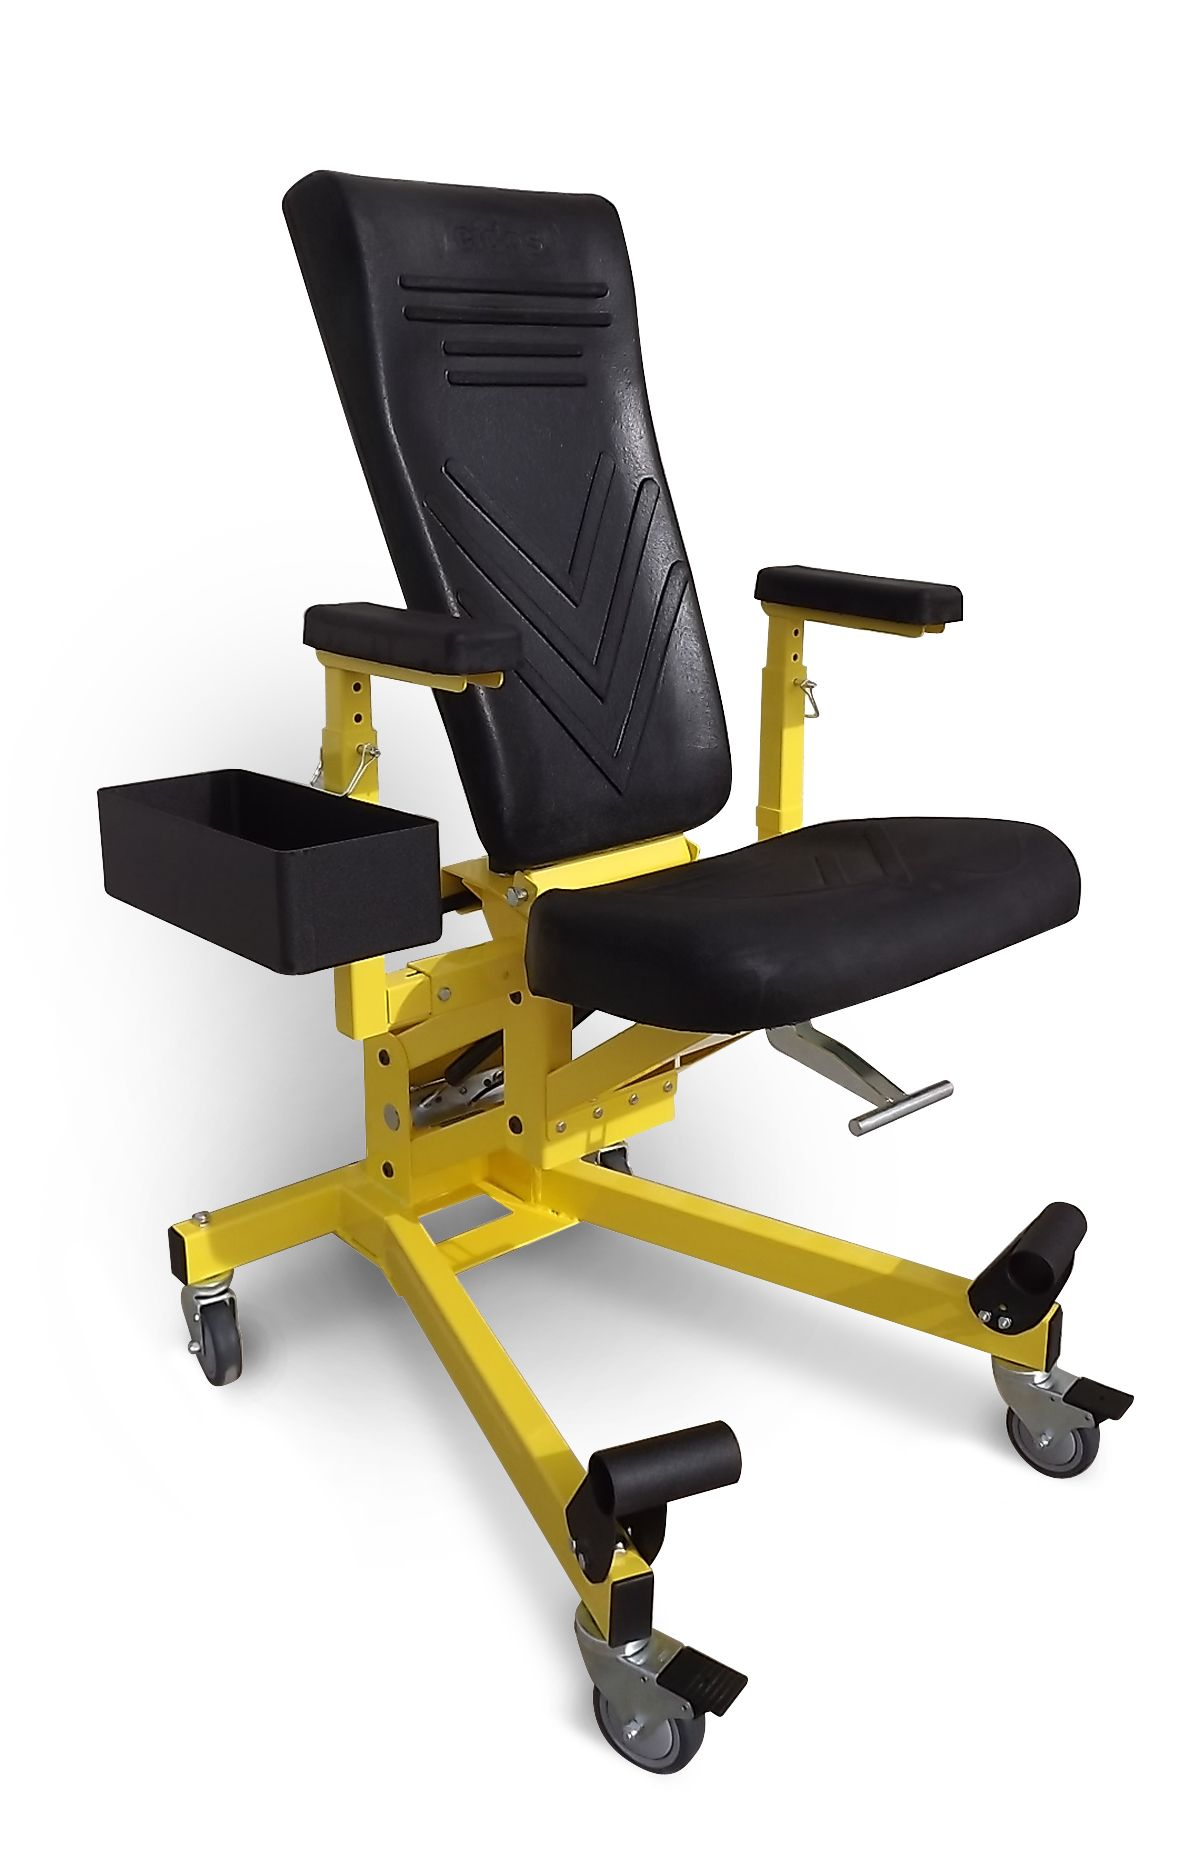 Work Chair Eidos Model 117 Gsw Is An Fully Adjustable Work Positioner